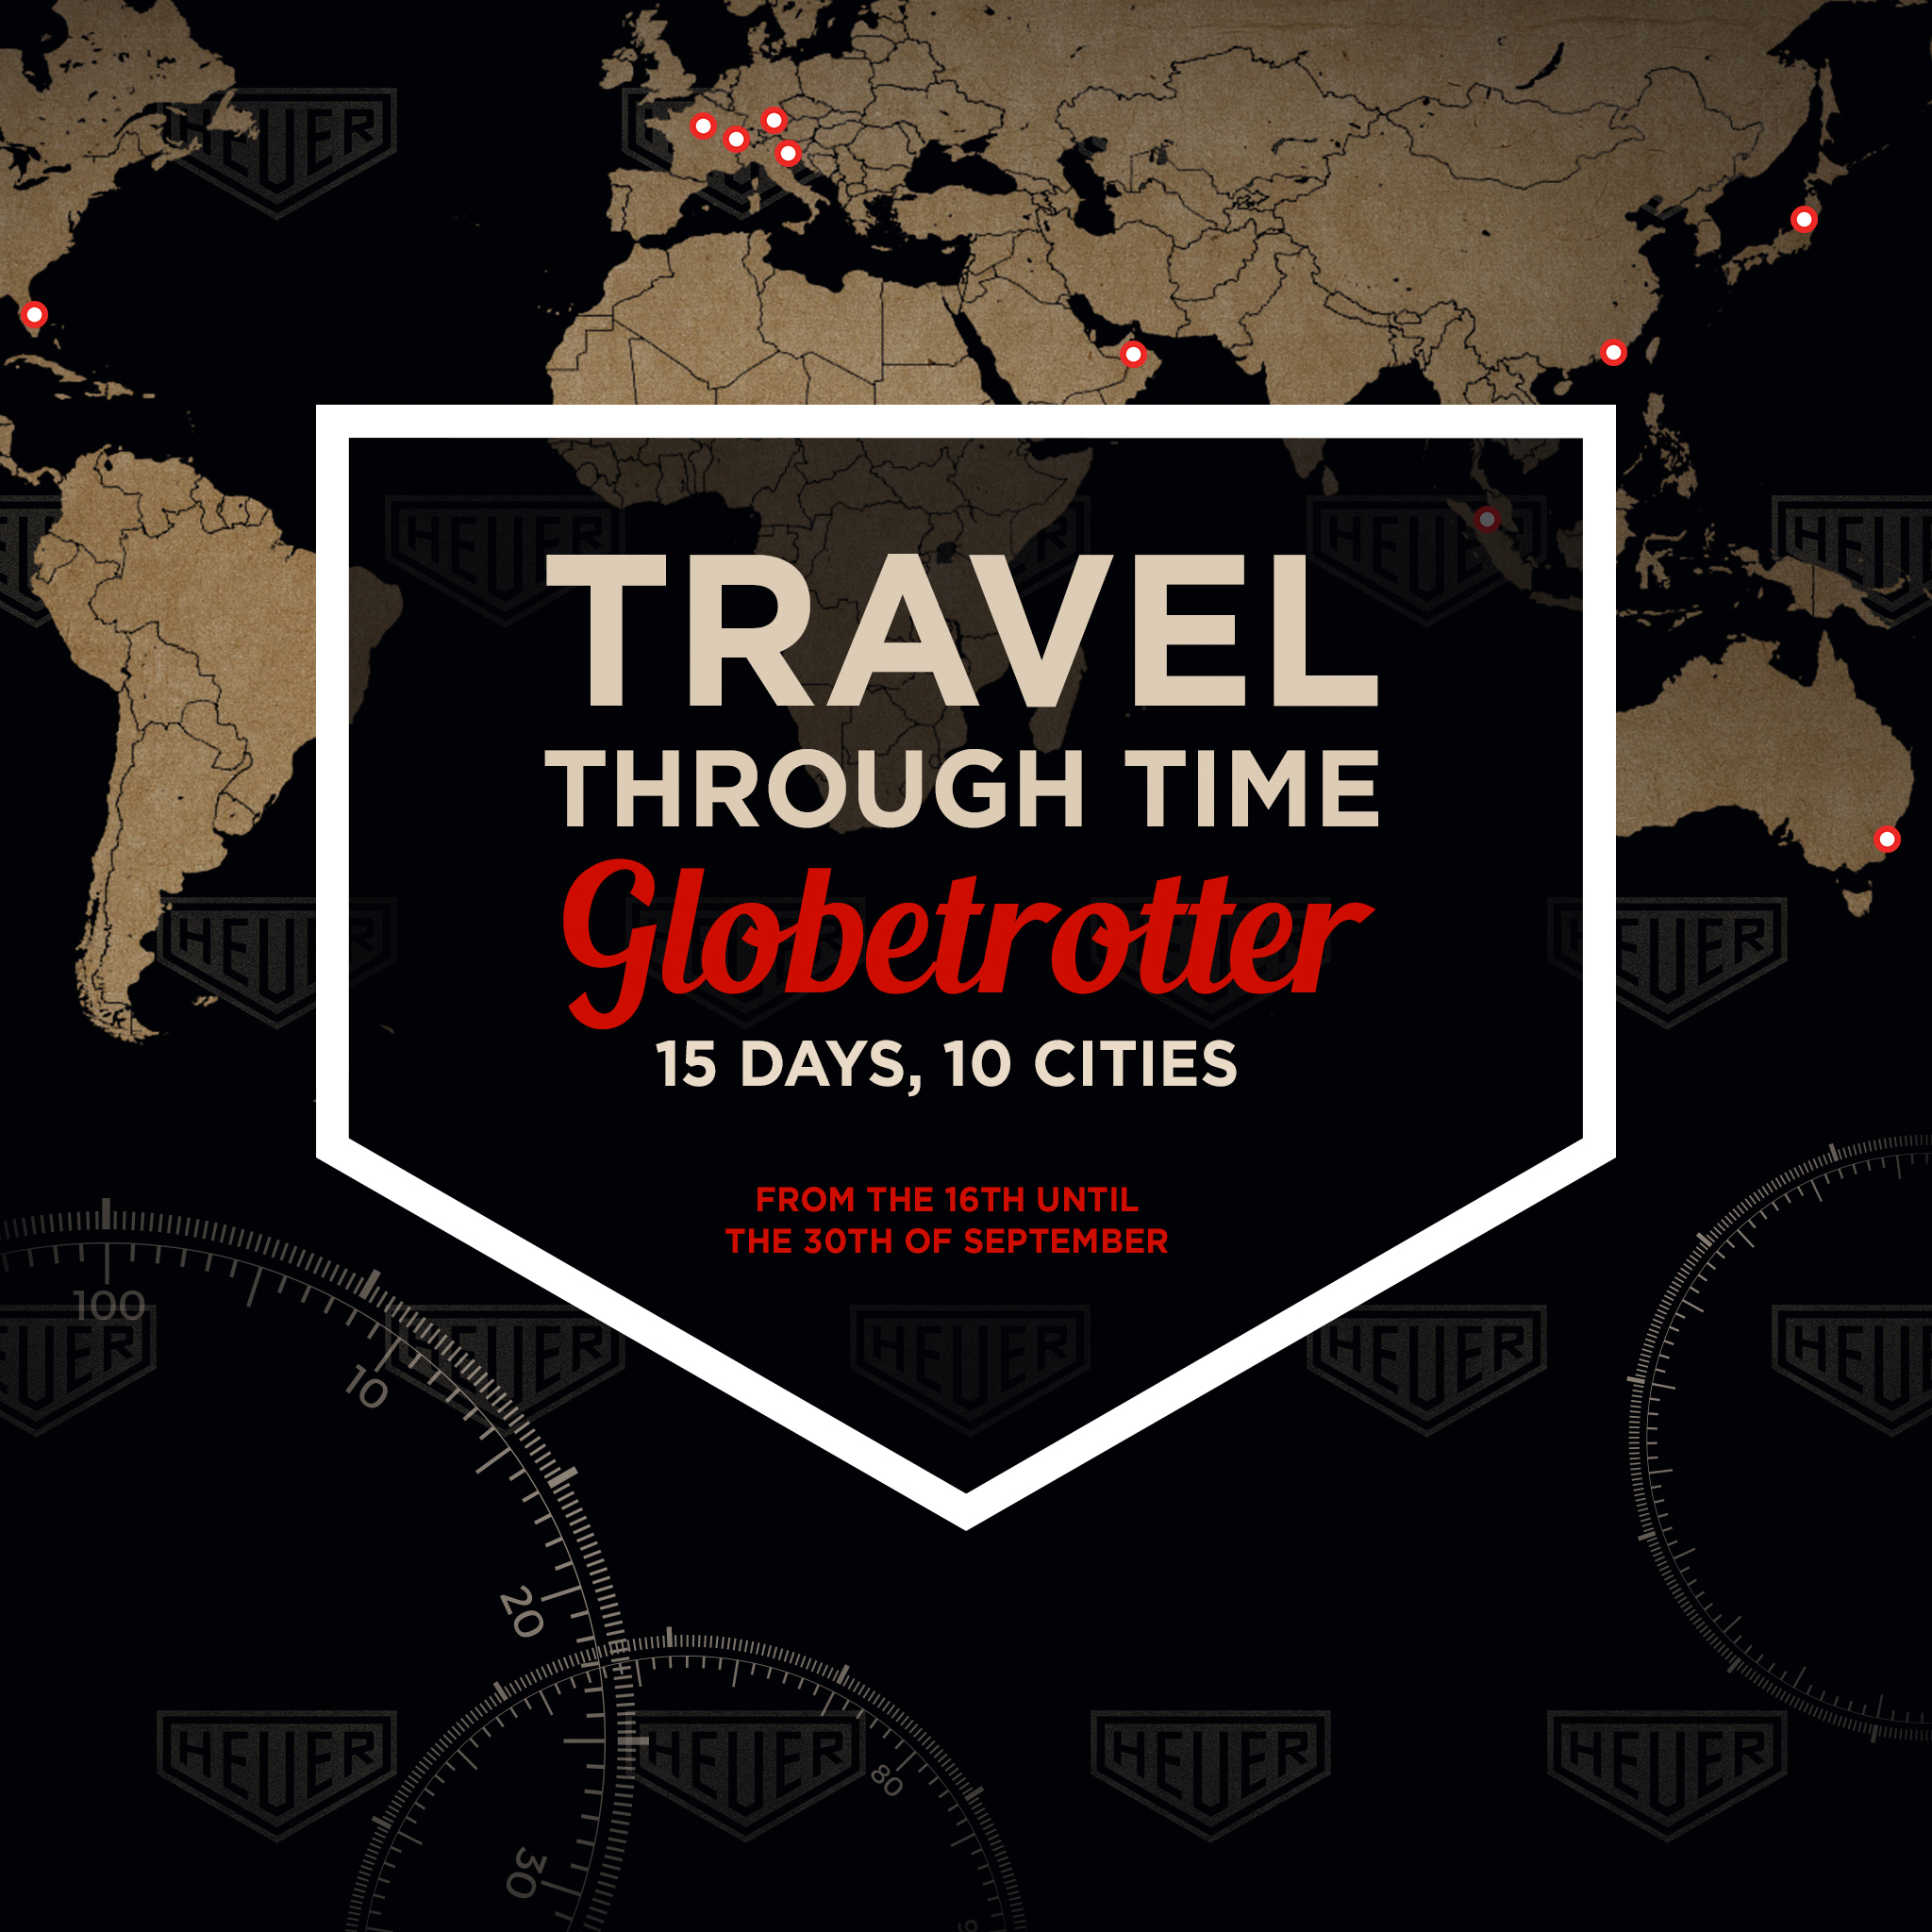 Presenting the Heuer Globetrotter exhibition